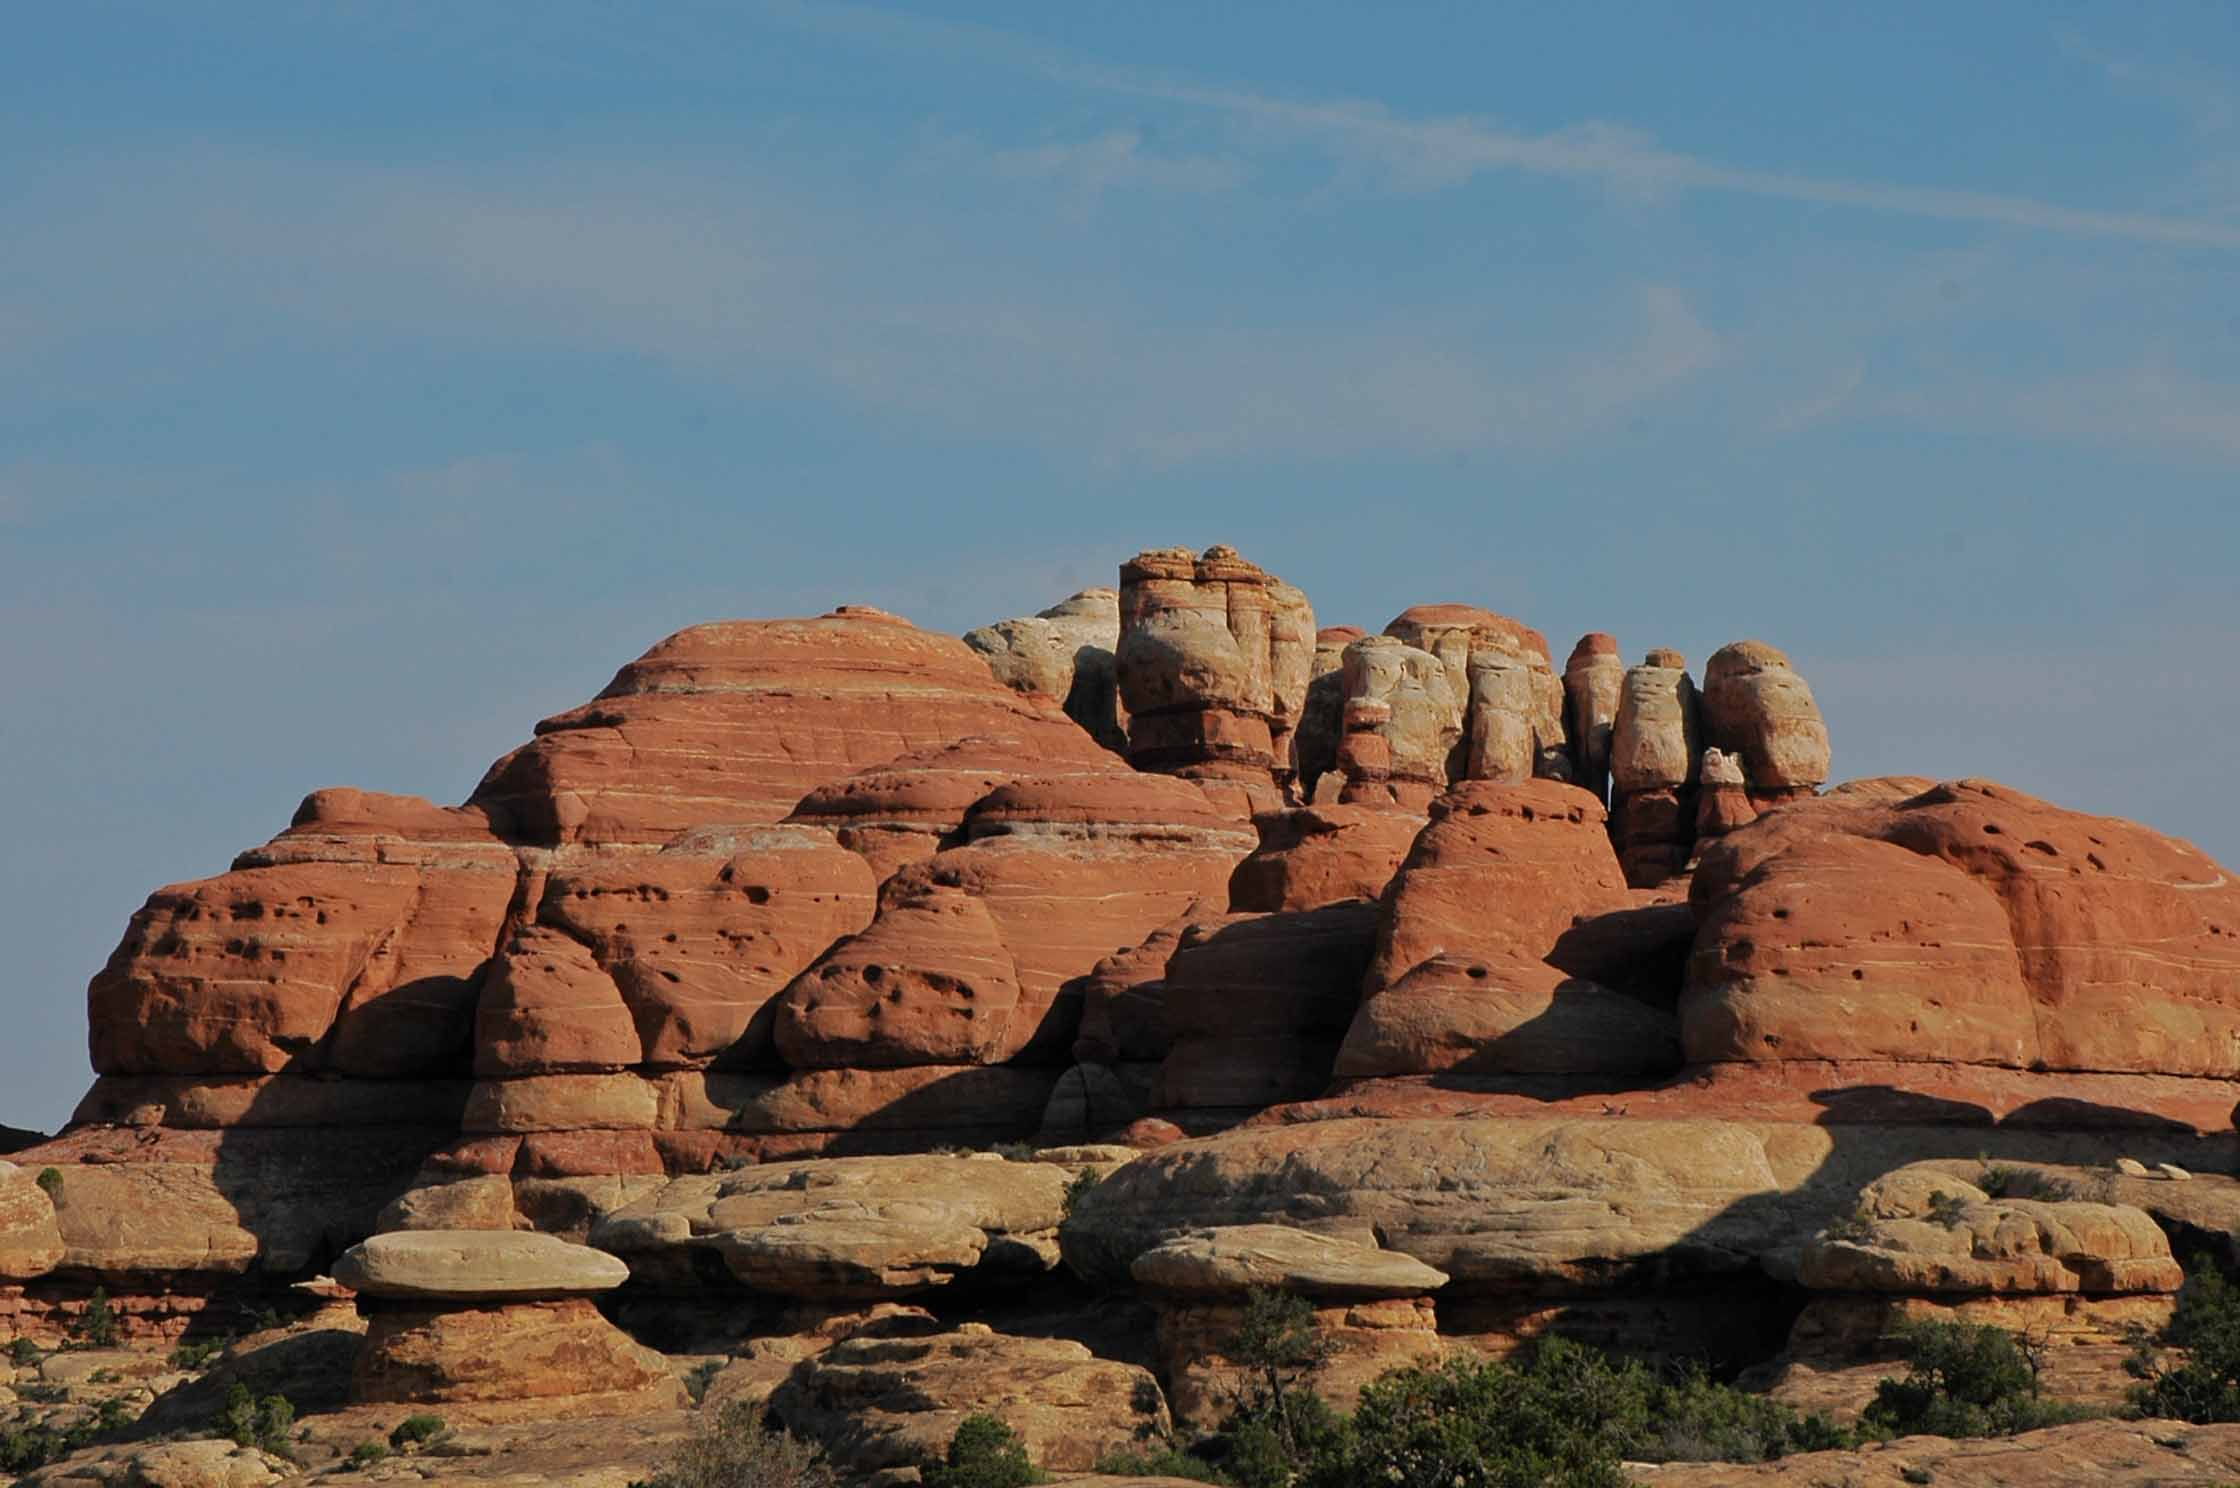 More fun rock formations